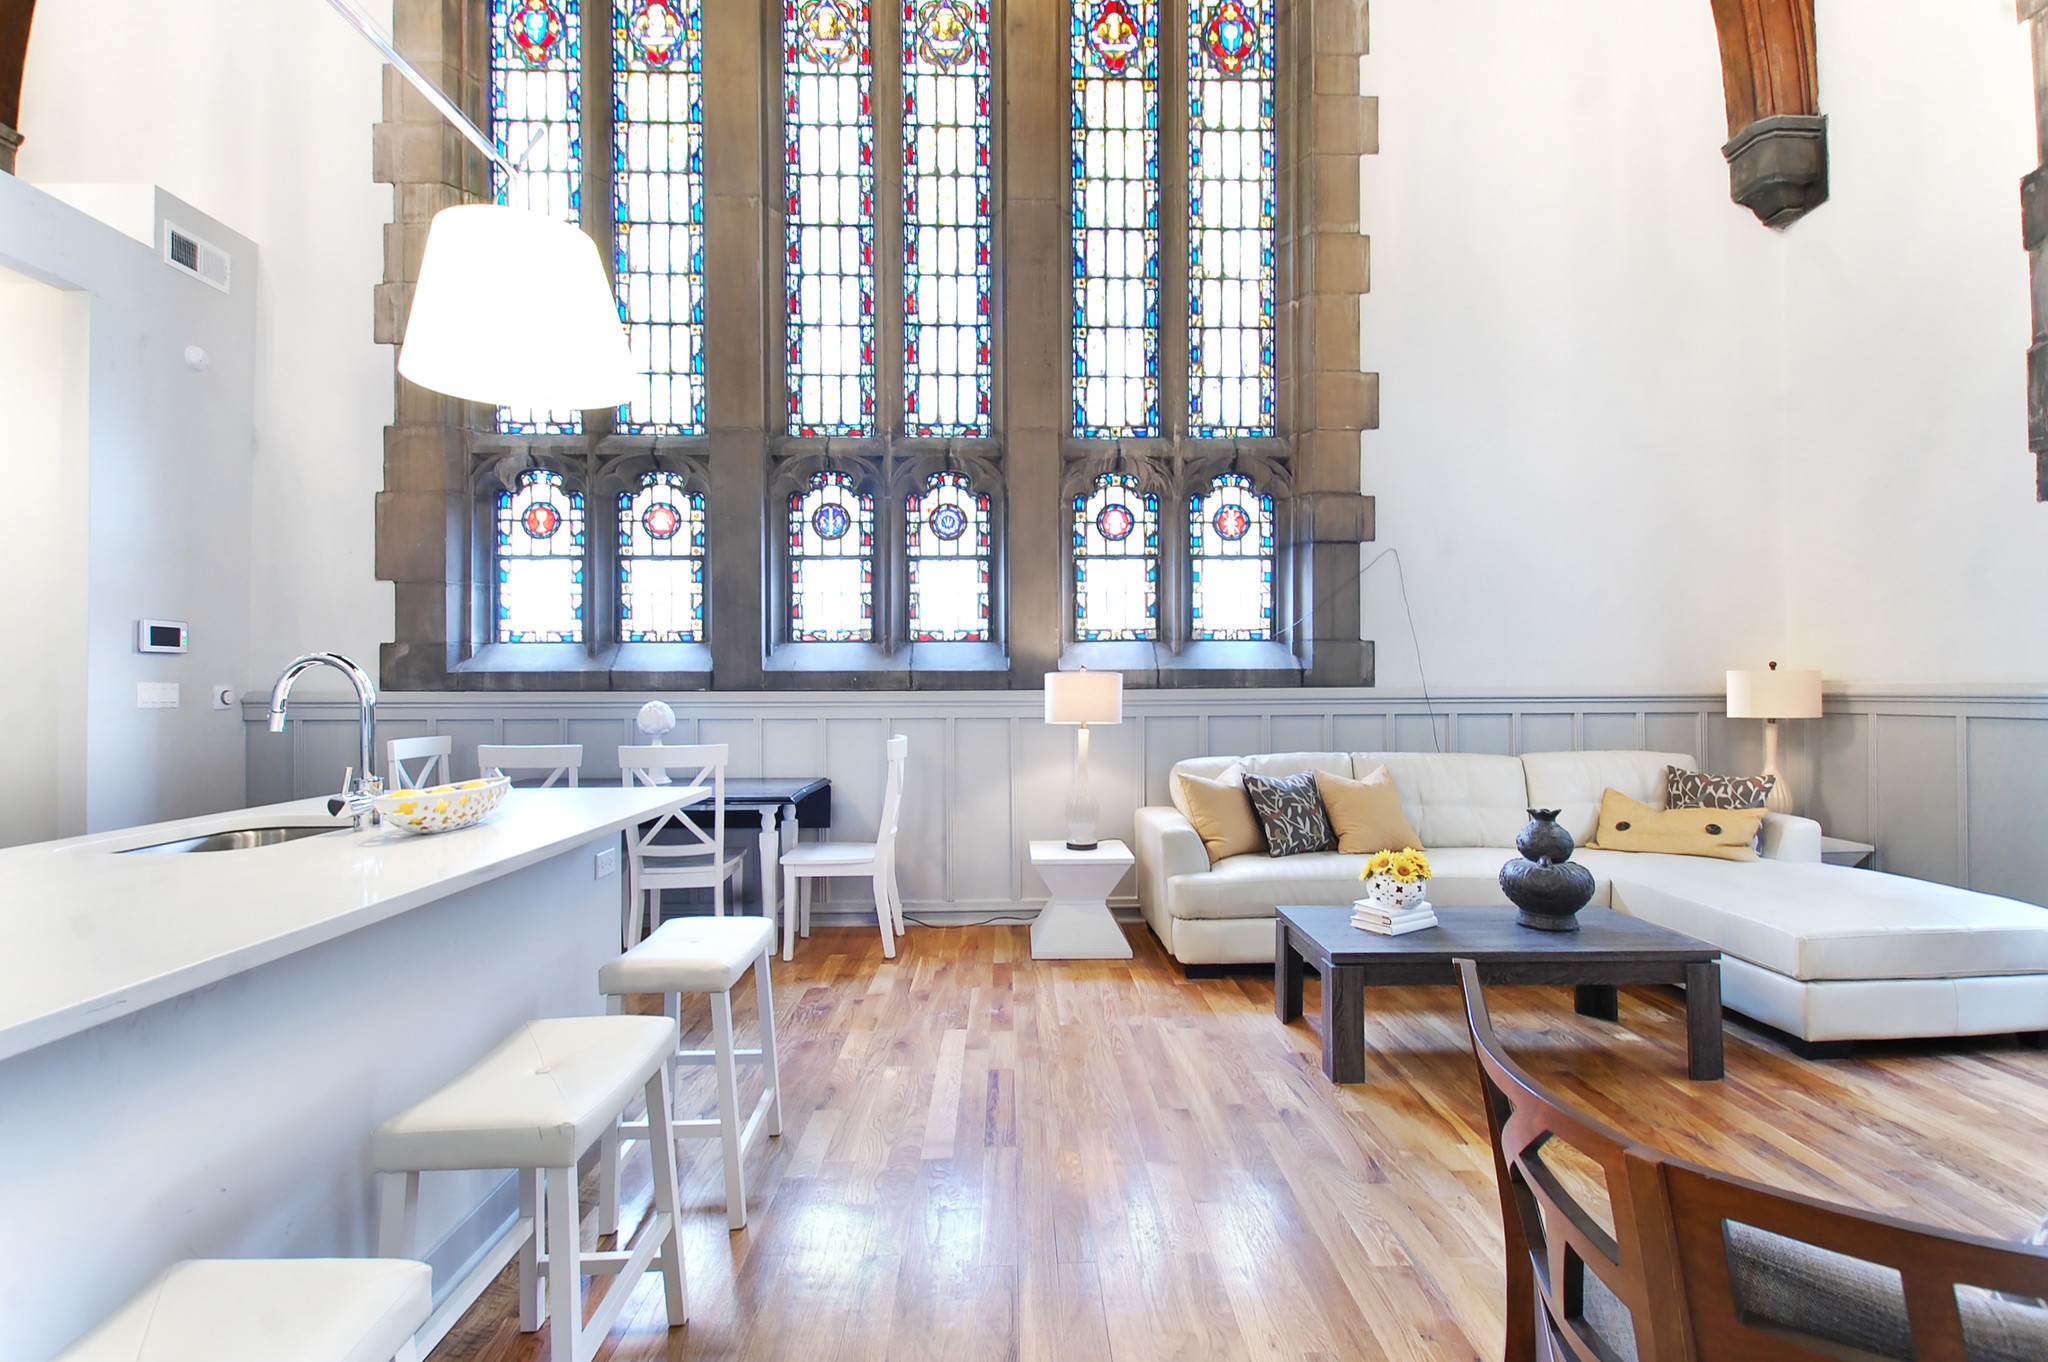 Logan Square church gets new life as 9 luxury apartments